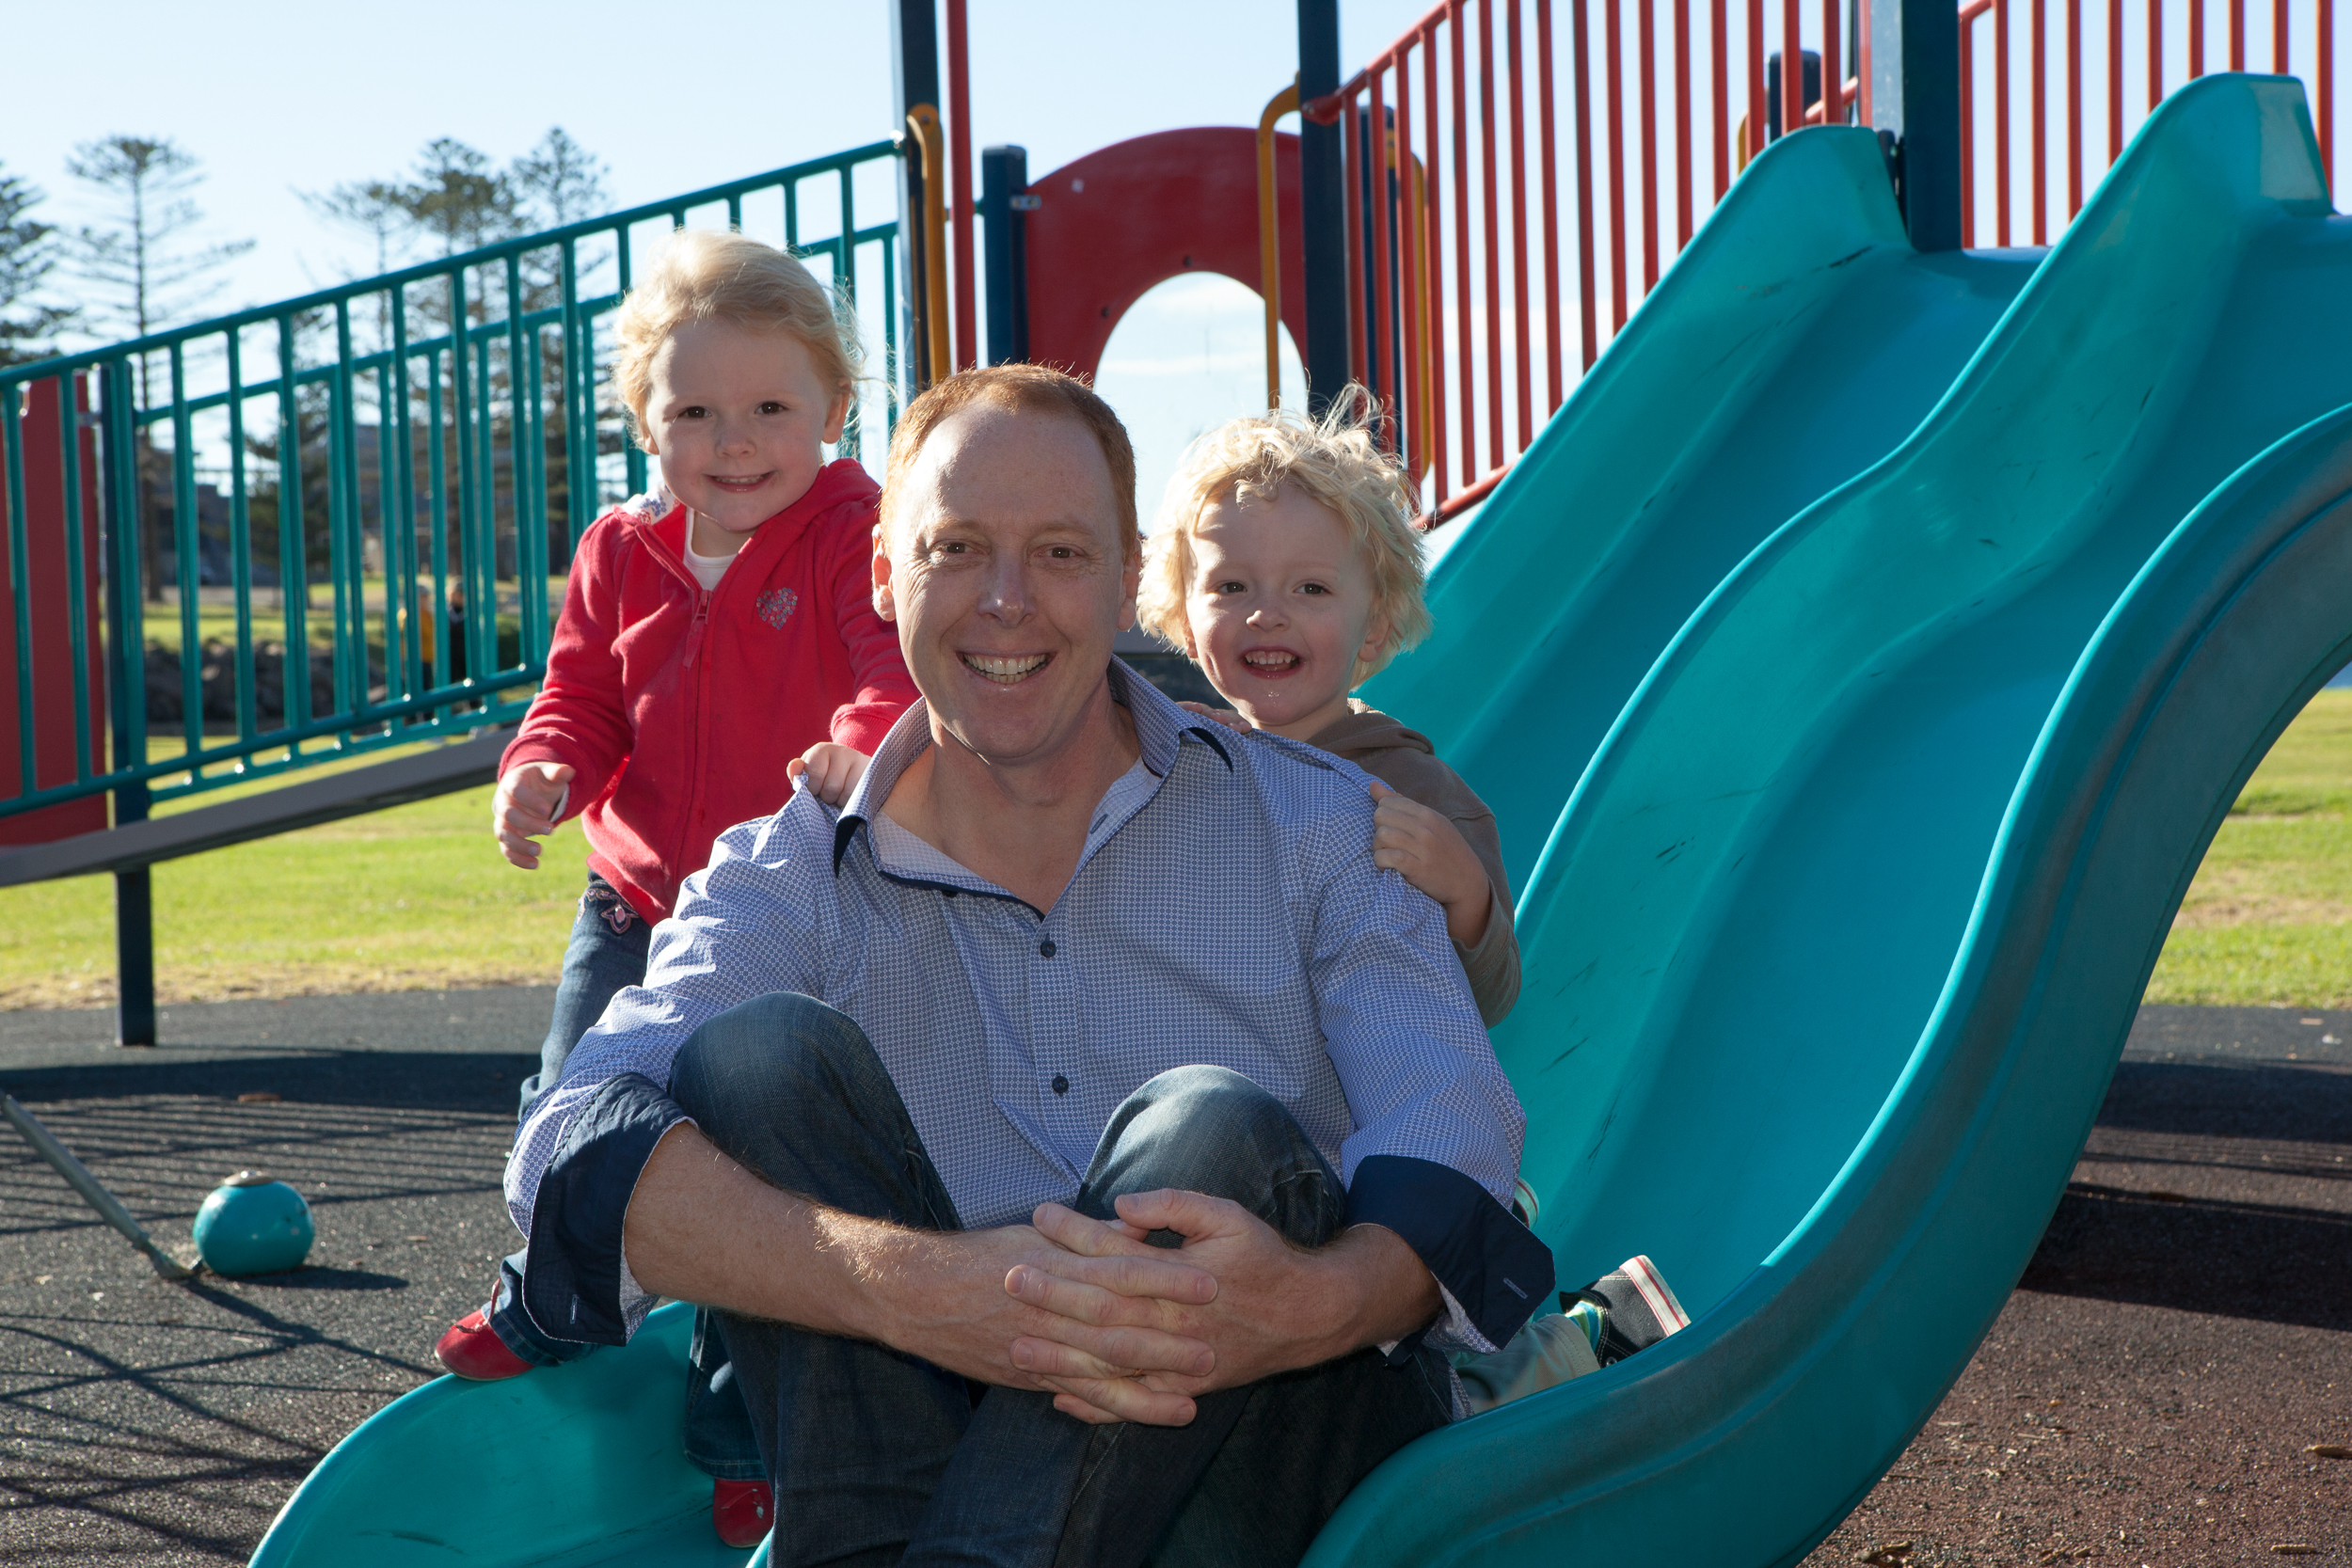 Deputy Mayor, Andrew Sloan, reflects on 9 years as a Councillor